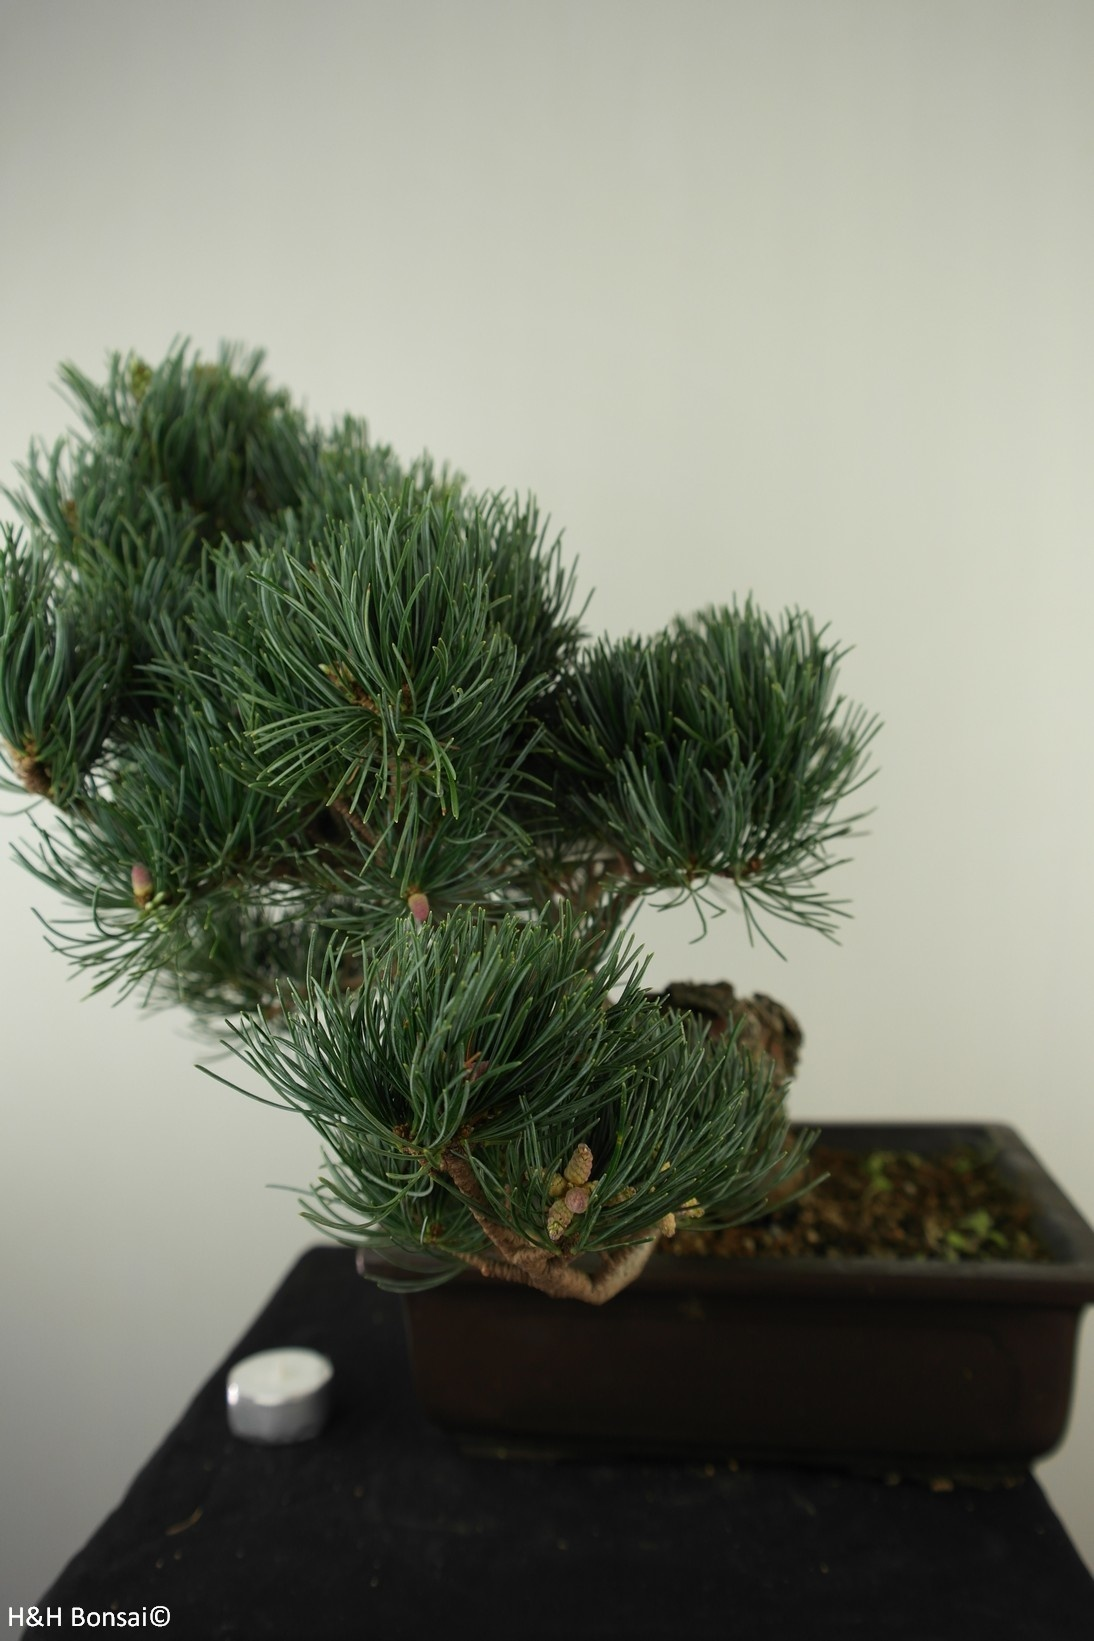 Bonsai Japanese White Pine, Pinus pentaphylla, no. 7813